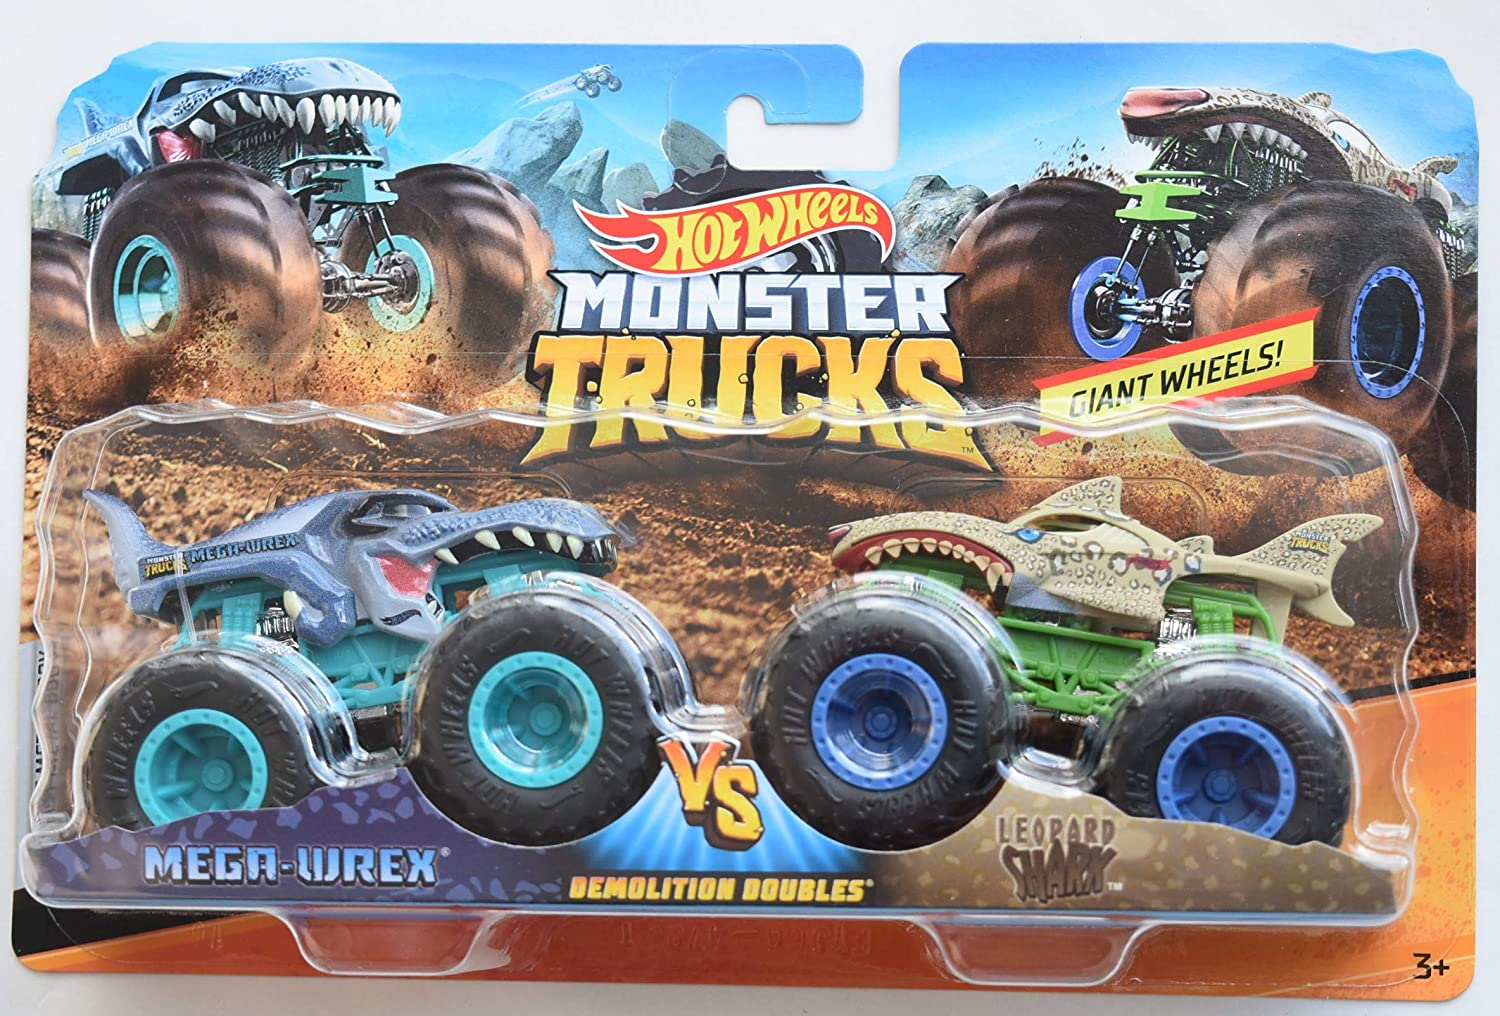 Amazon Com Hot Wheels Monster Jam 1 64 Scale Demolition Doubles Mega Wrex Vs Leopard Shark Series 2 Giant Wheels Toys Games